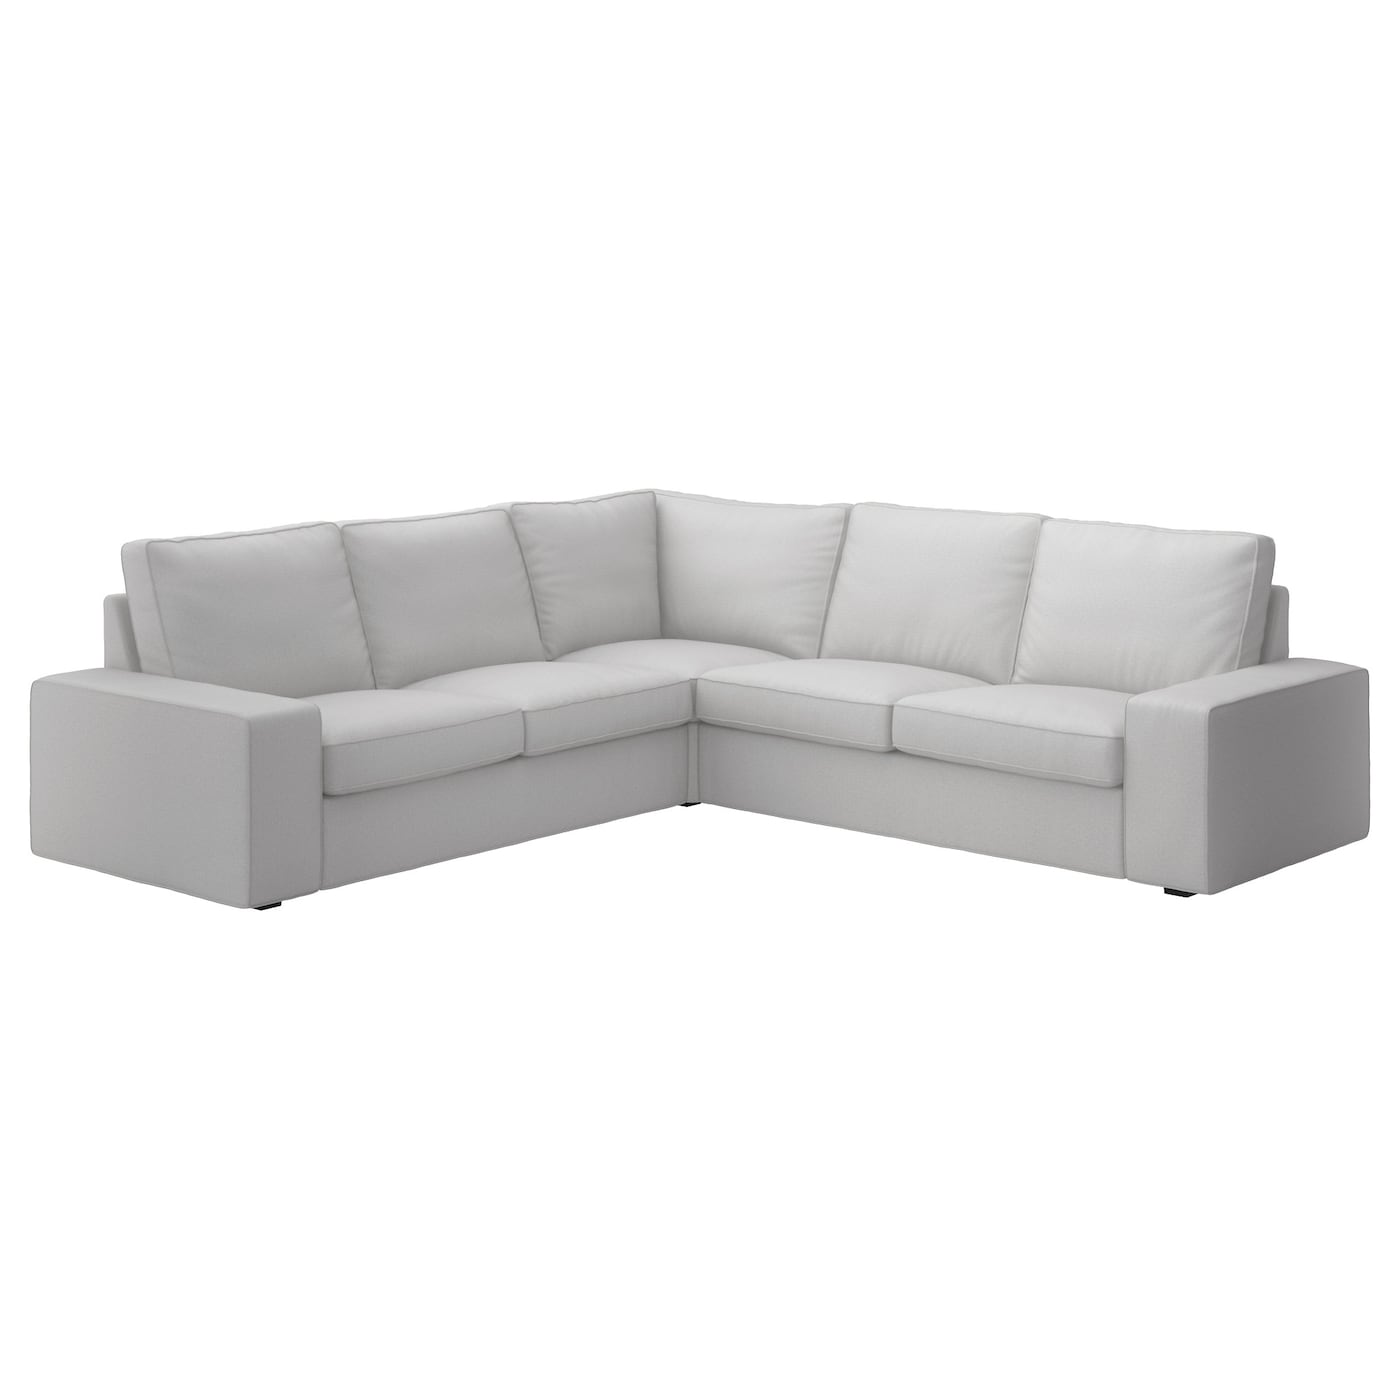 kivik corner sofa 4 seat ramna light grey ikea. Black Bedroom Furniture Sets. Home Design Ideas